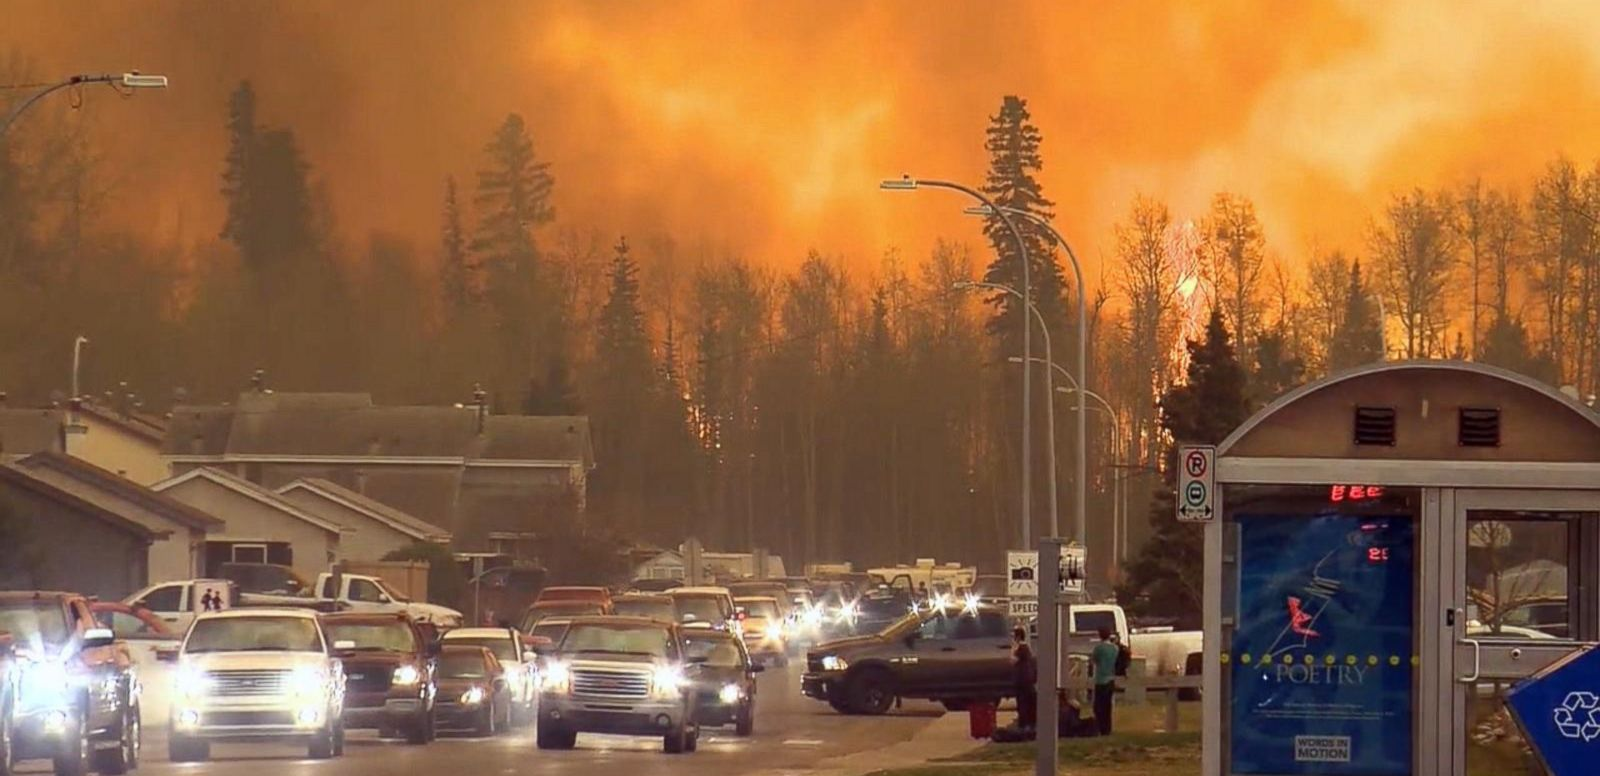 VIDEO: Fire Ravages City of Fort McMurray, Alberta